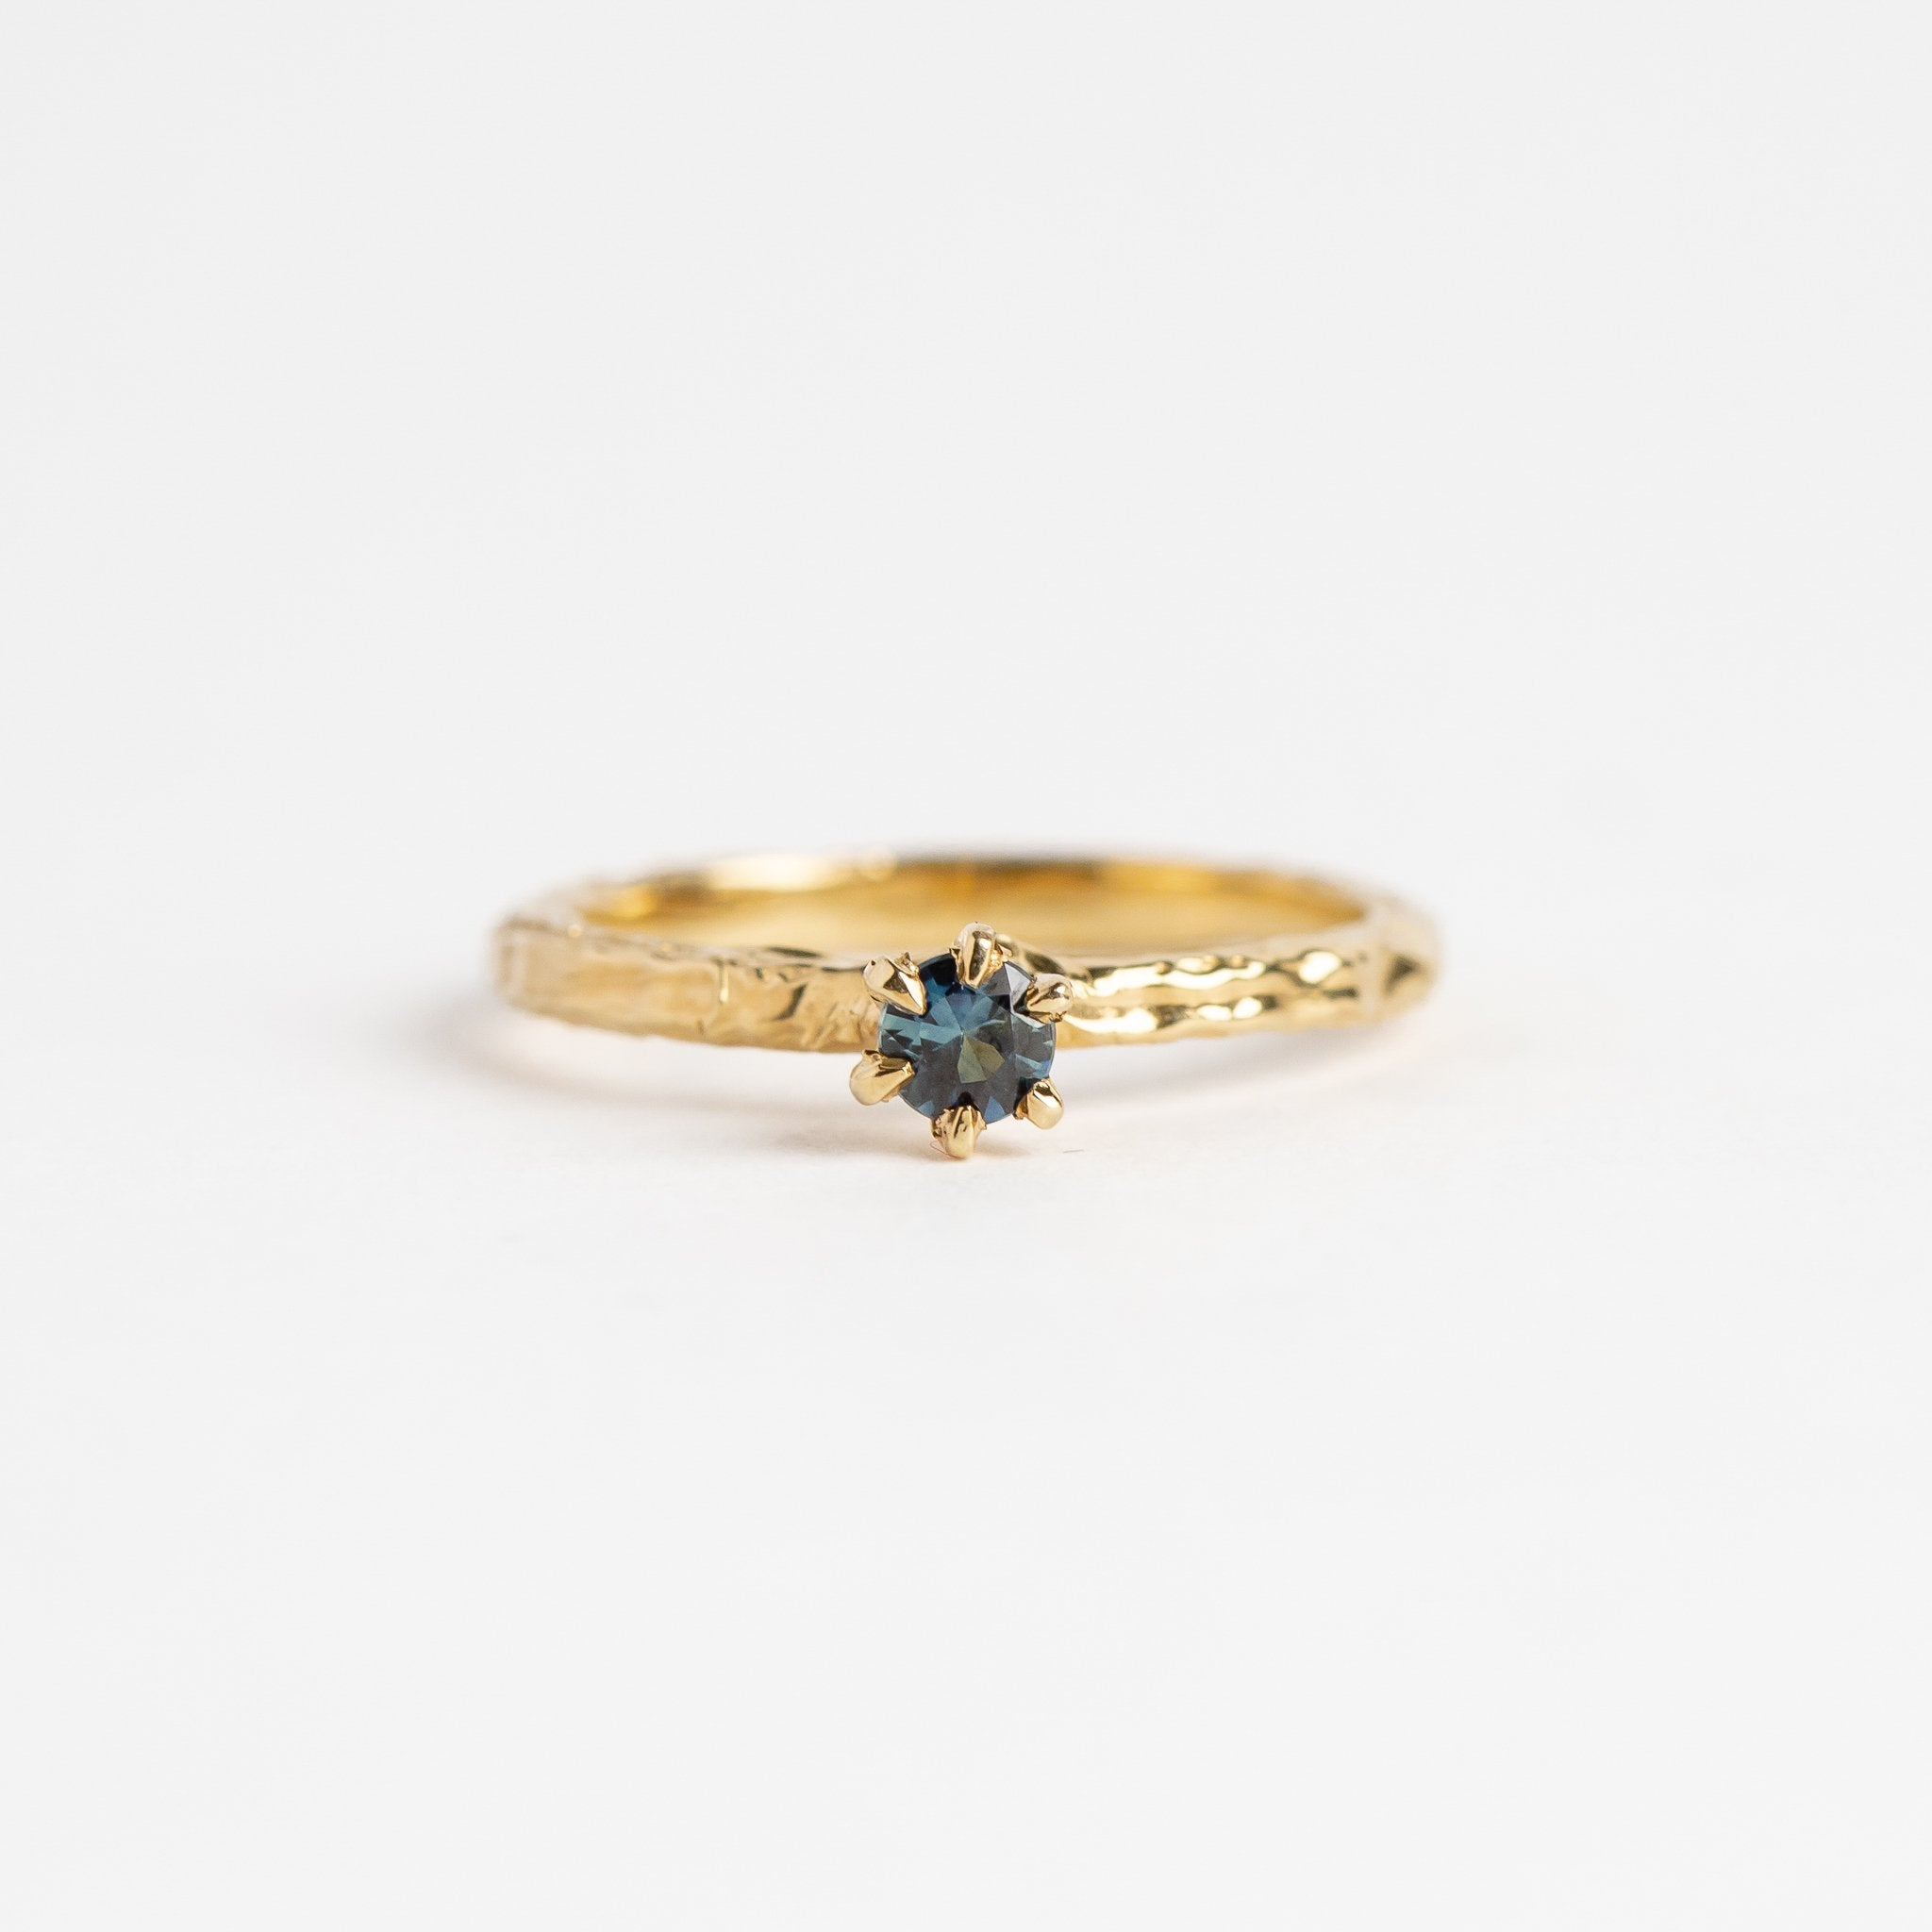 9ct Yellow Gold Claw Ring with Ethically Sourced Australian Sapphire, Hand Made Jewellery, Made in Melbourne